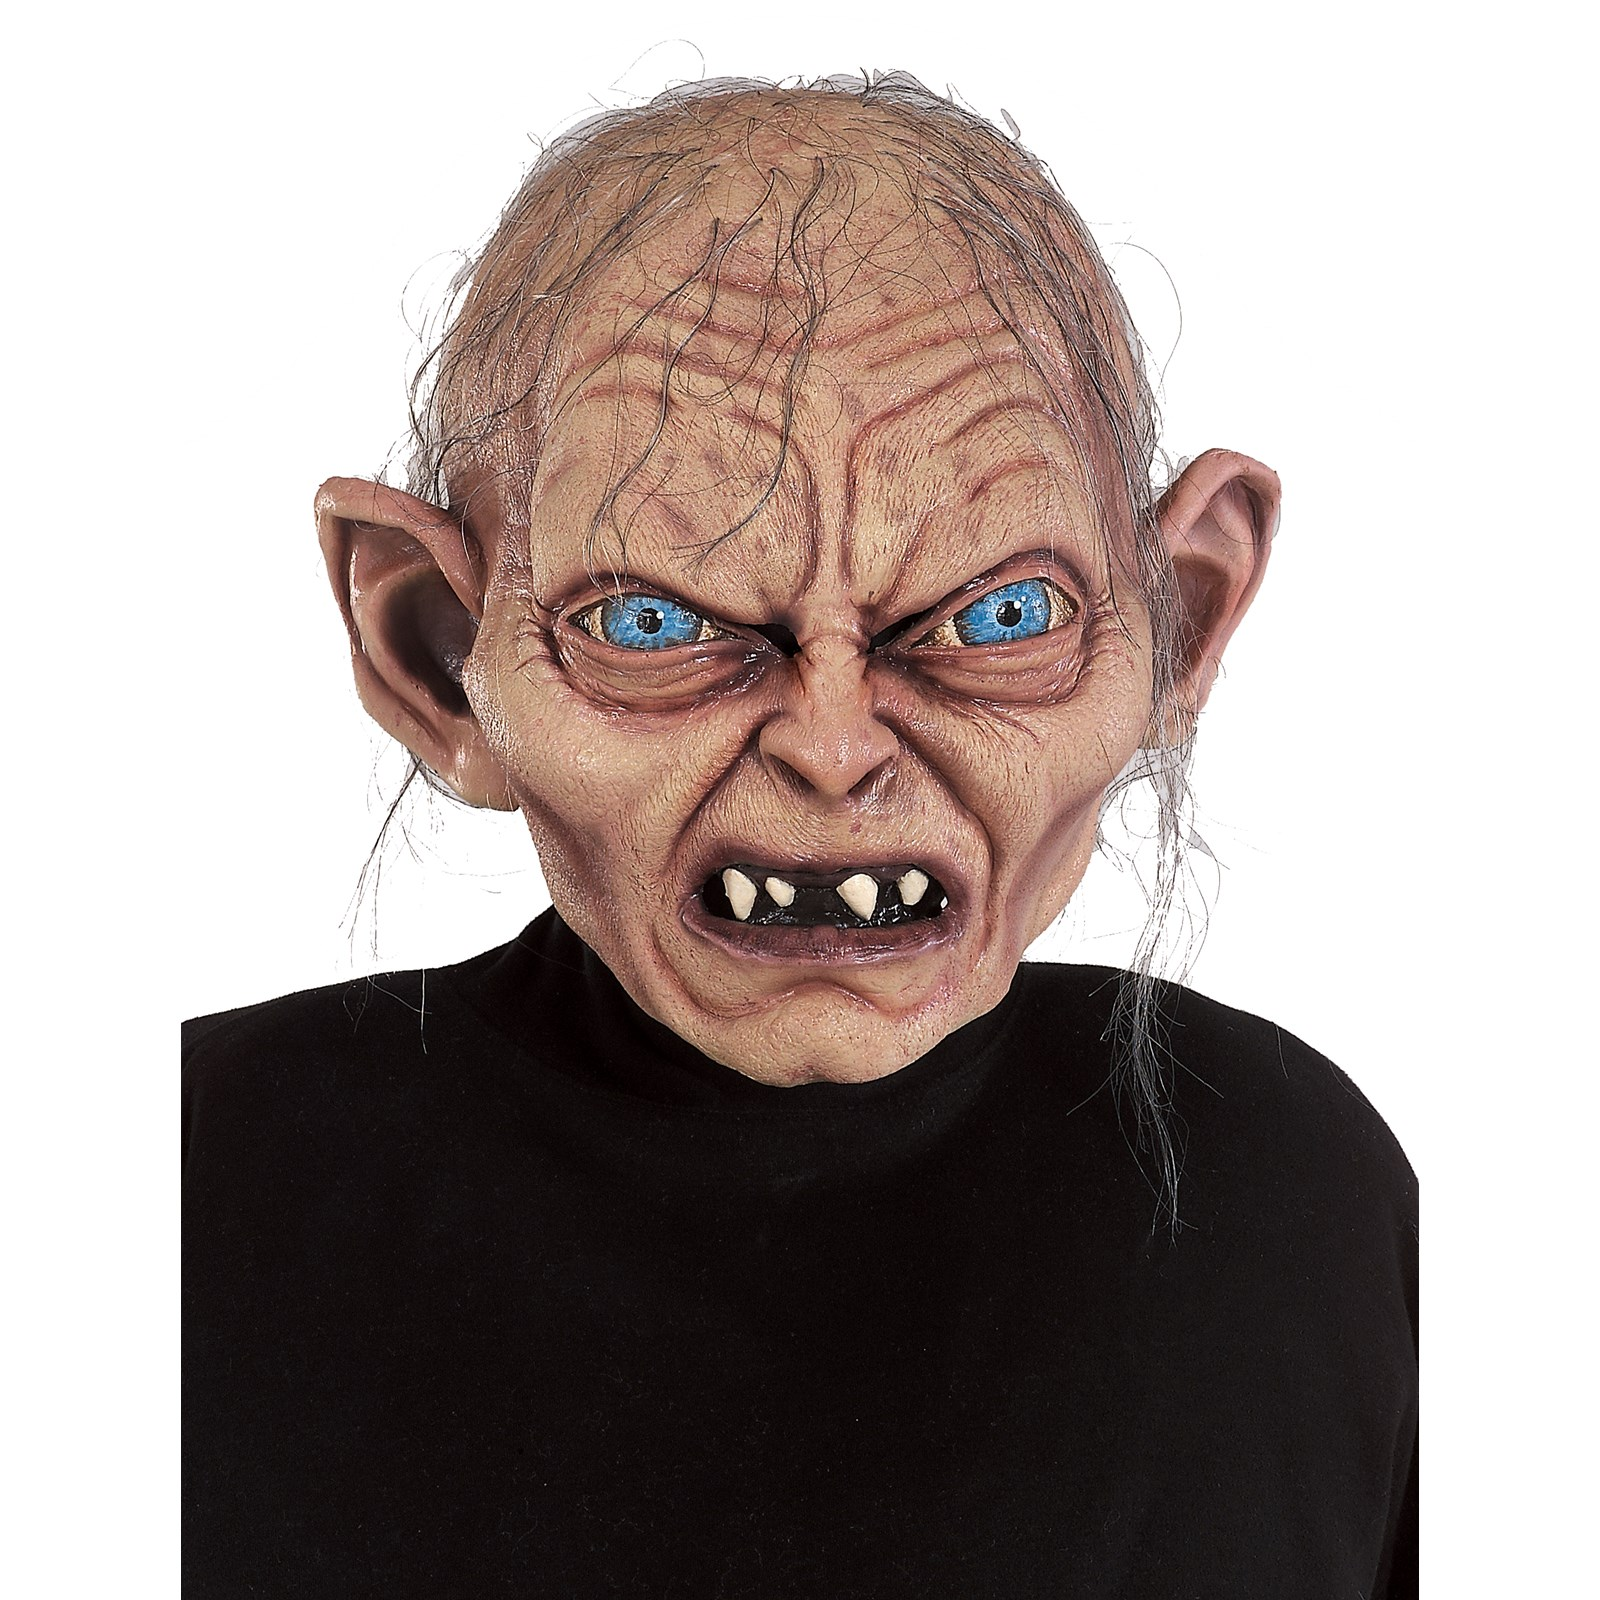 The Gollum Hobbit Mask For Men